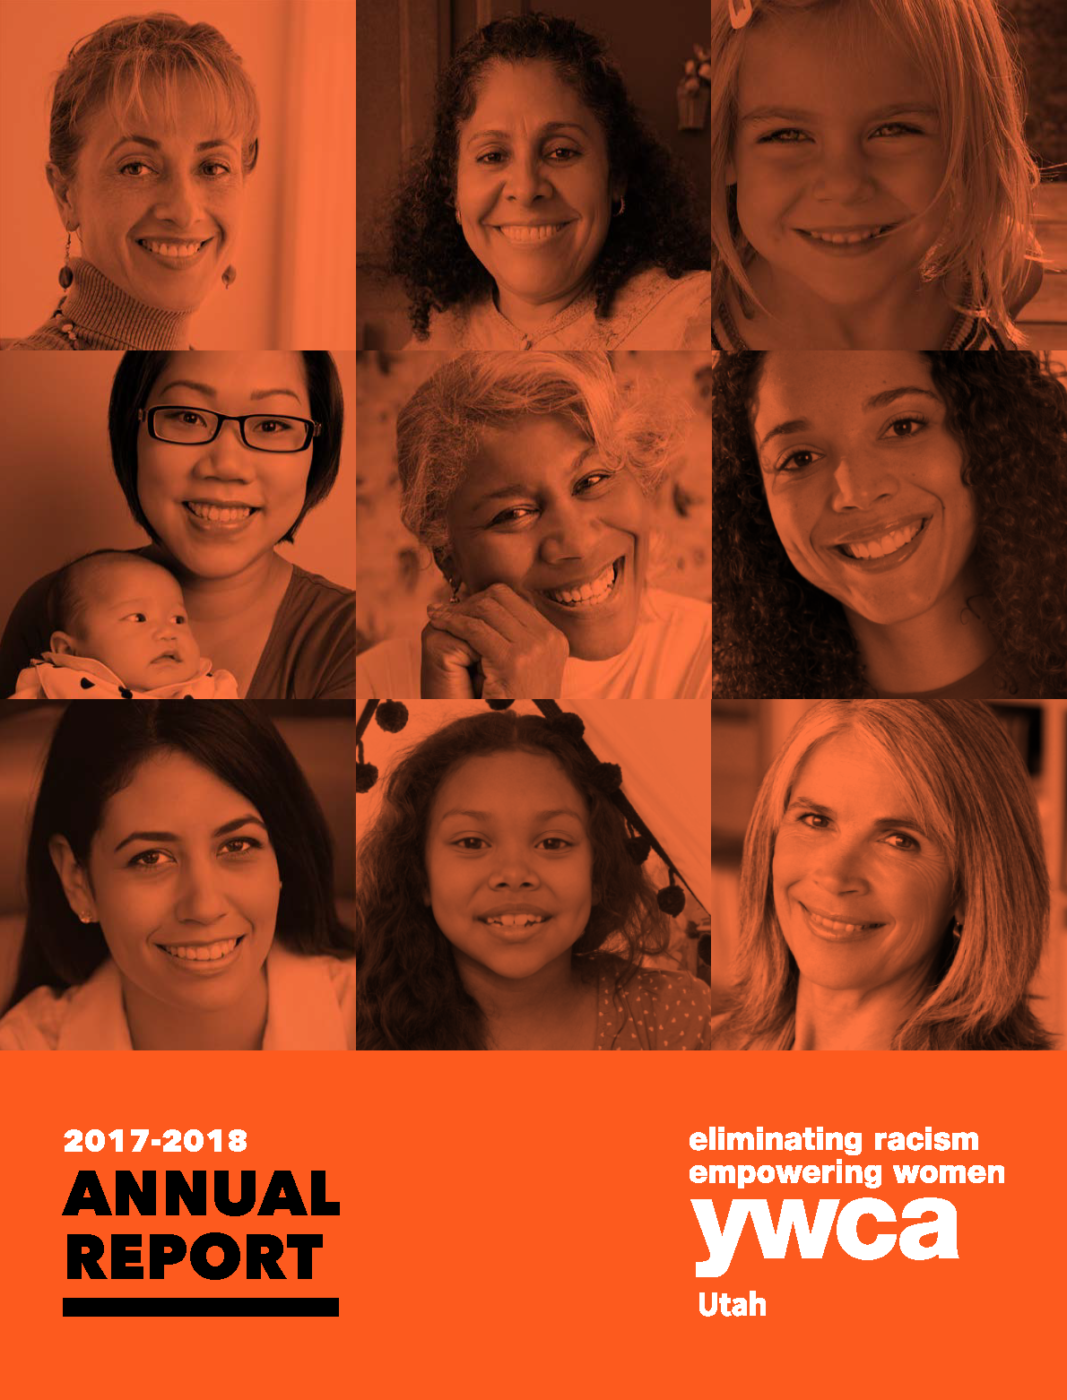 YWCA Utah 17-18 Annual Report